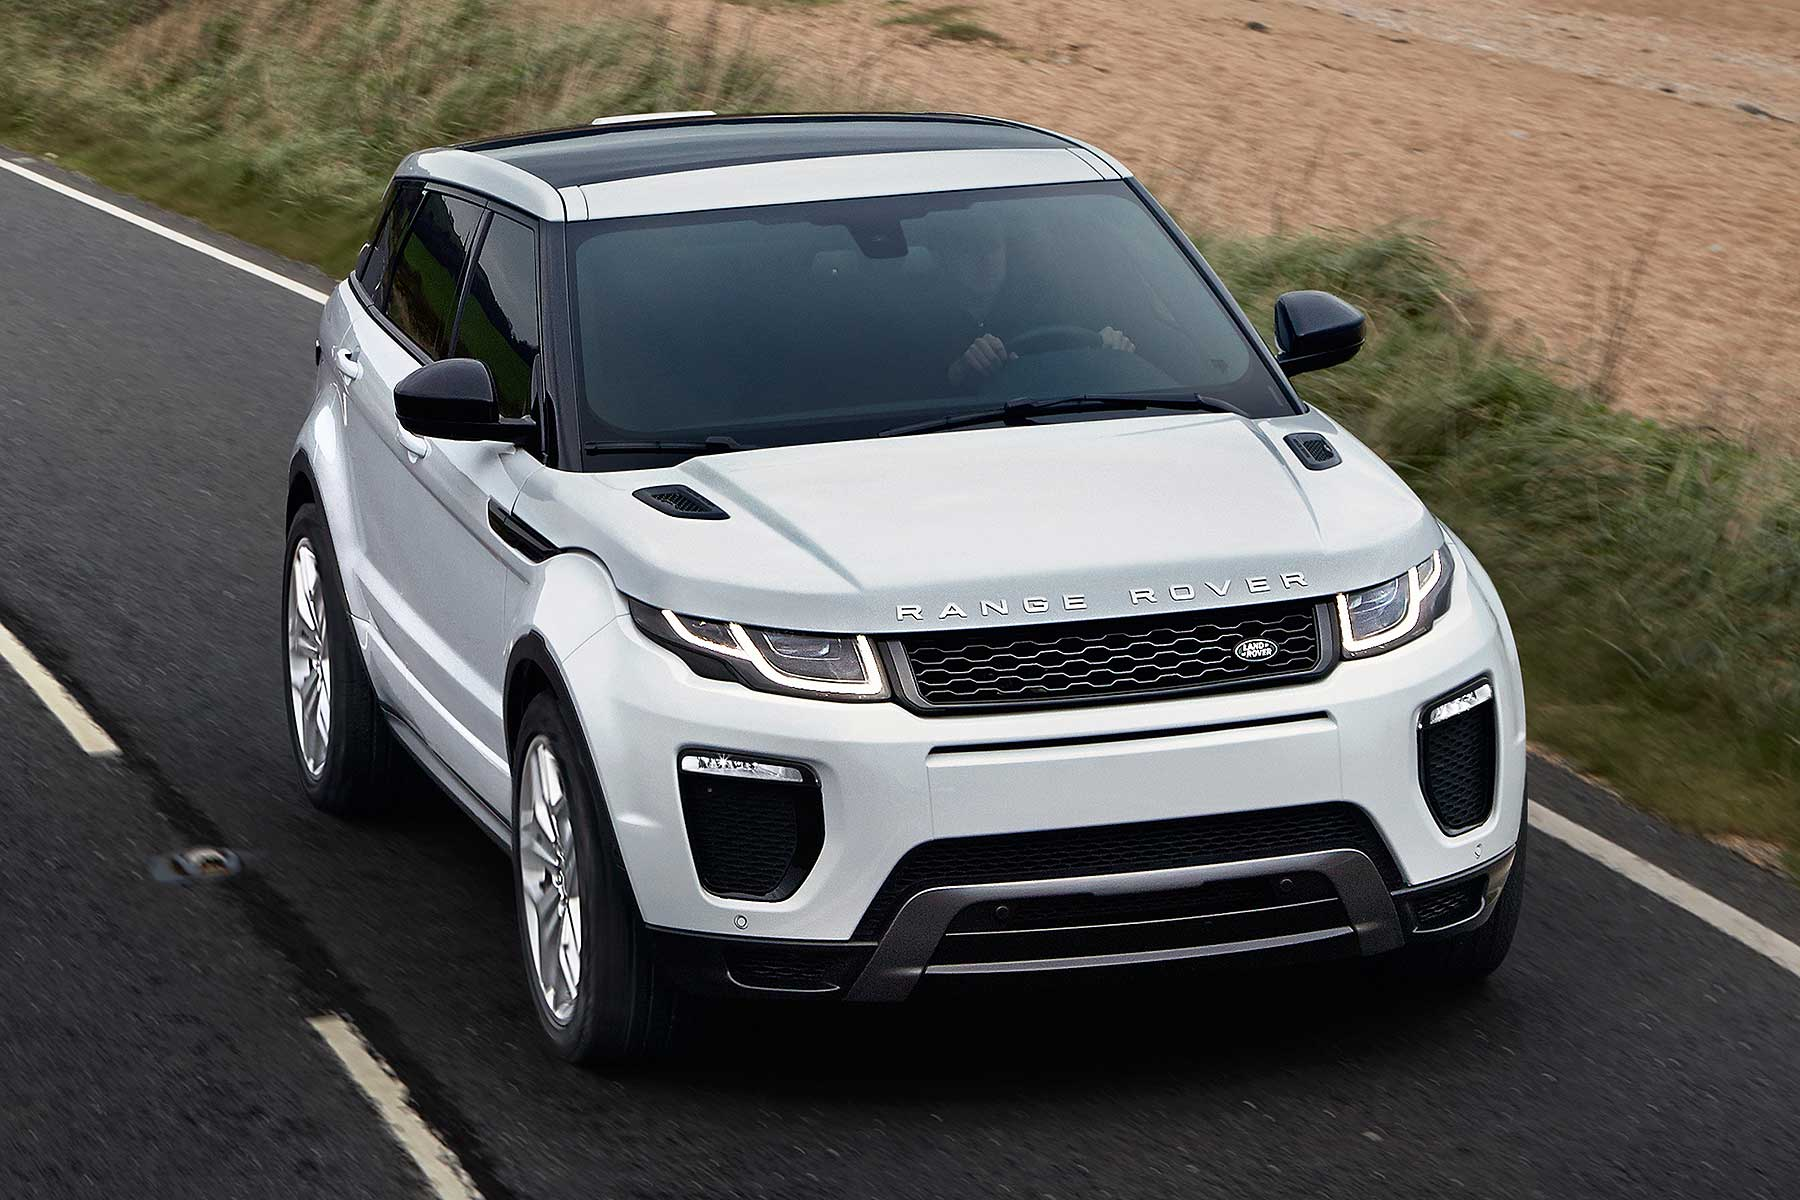 2016 Range Rover Evoque Prices To Start At 30 200 Motoring Research